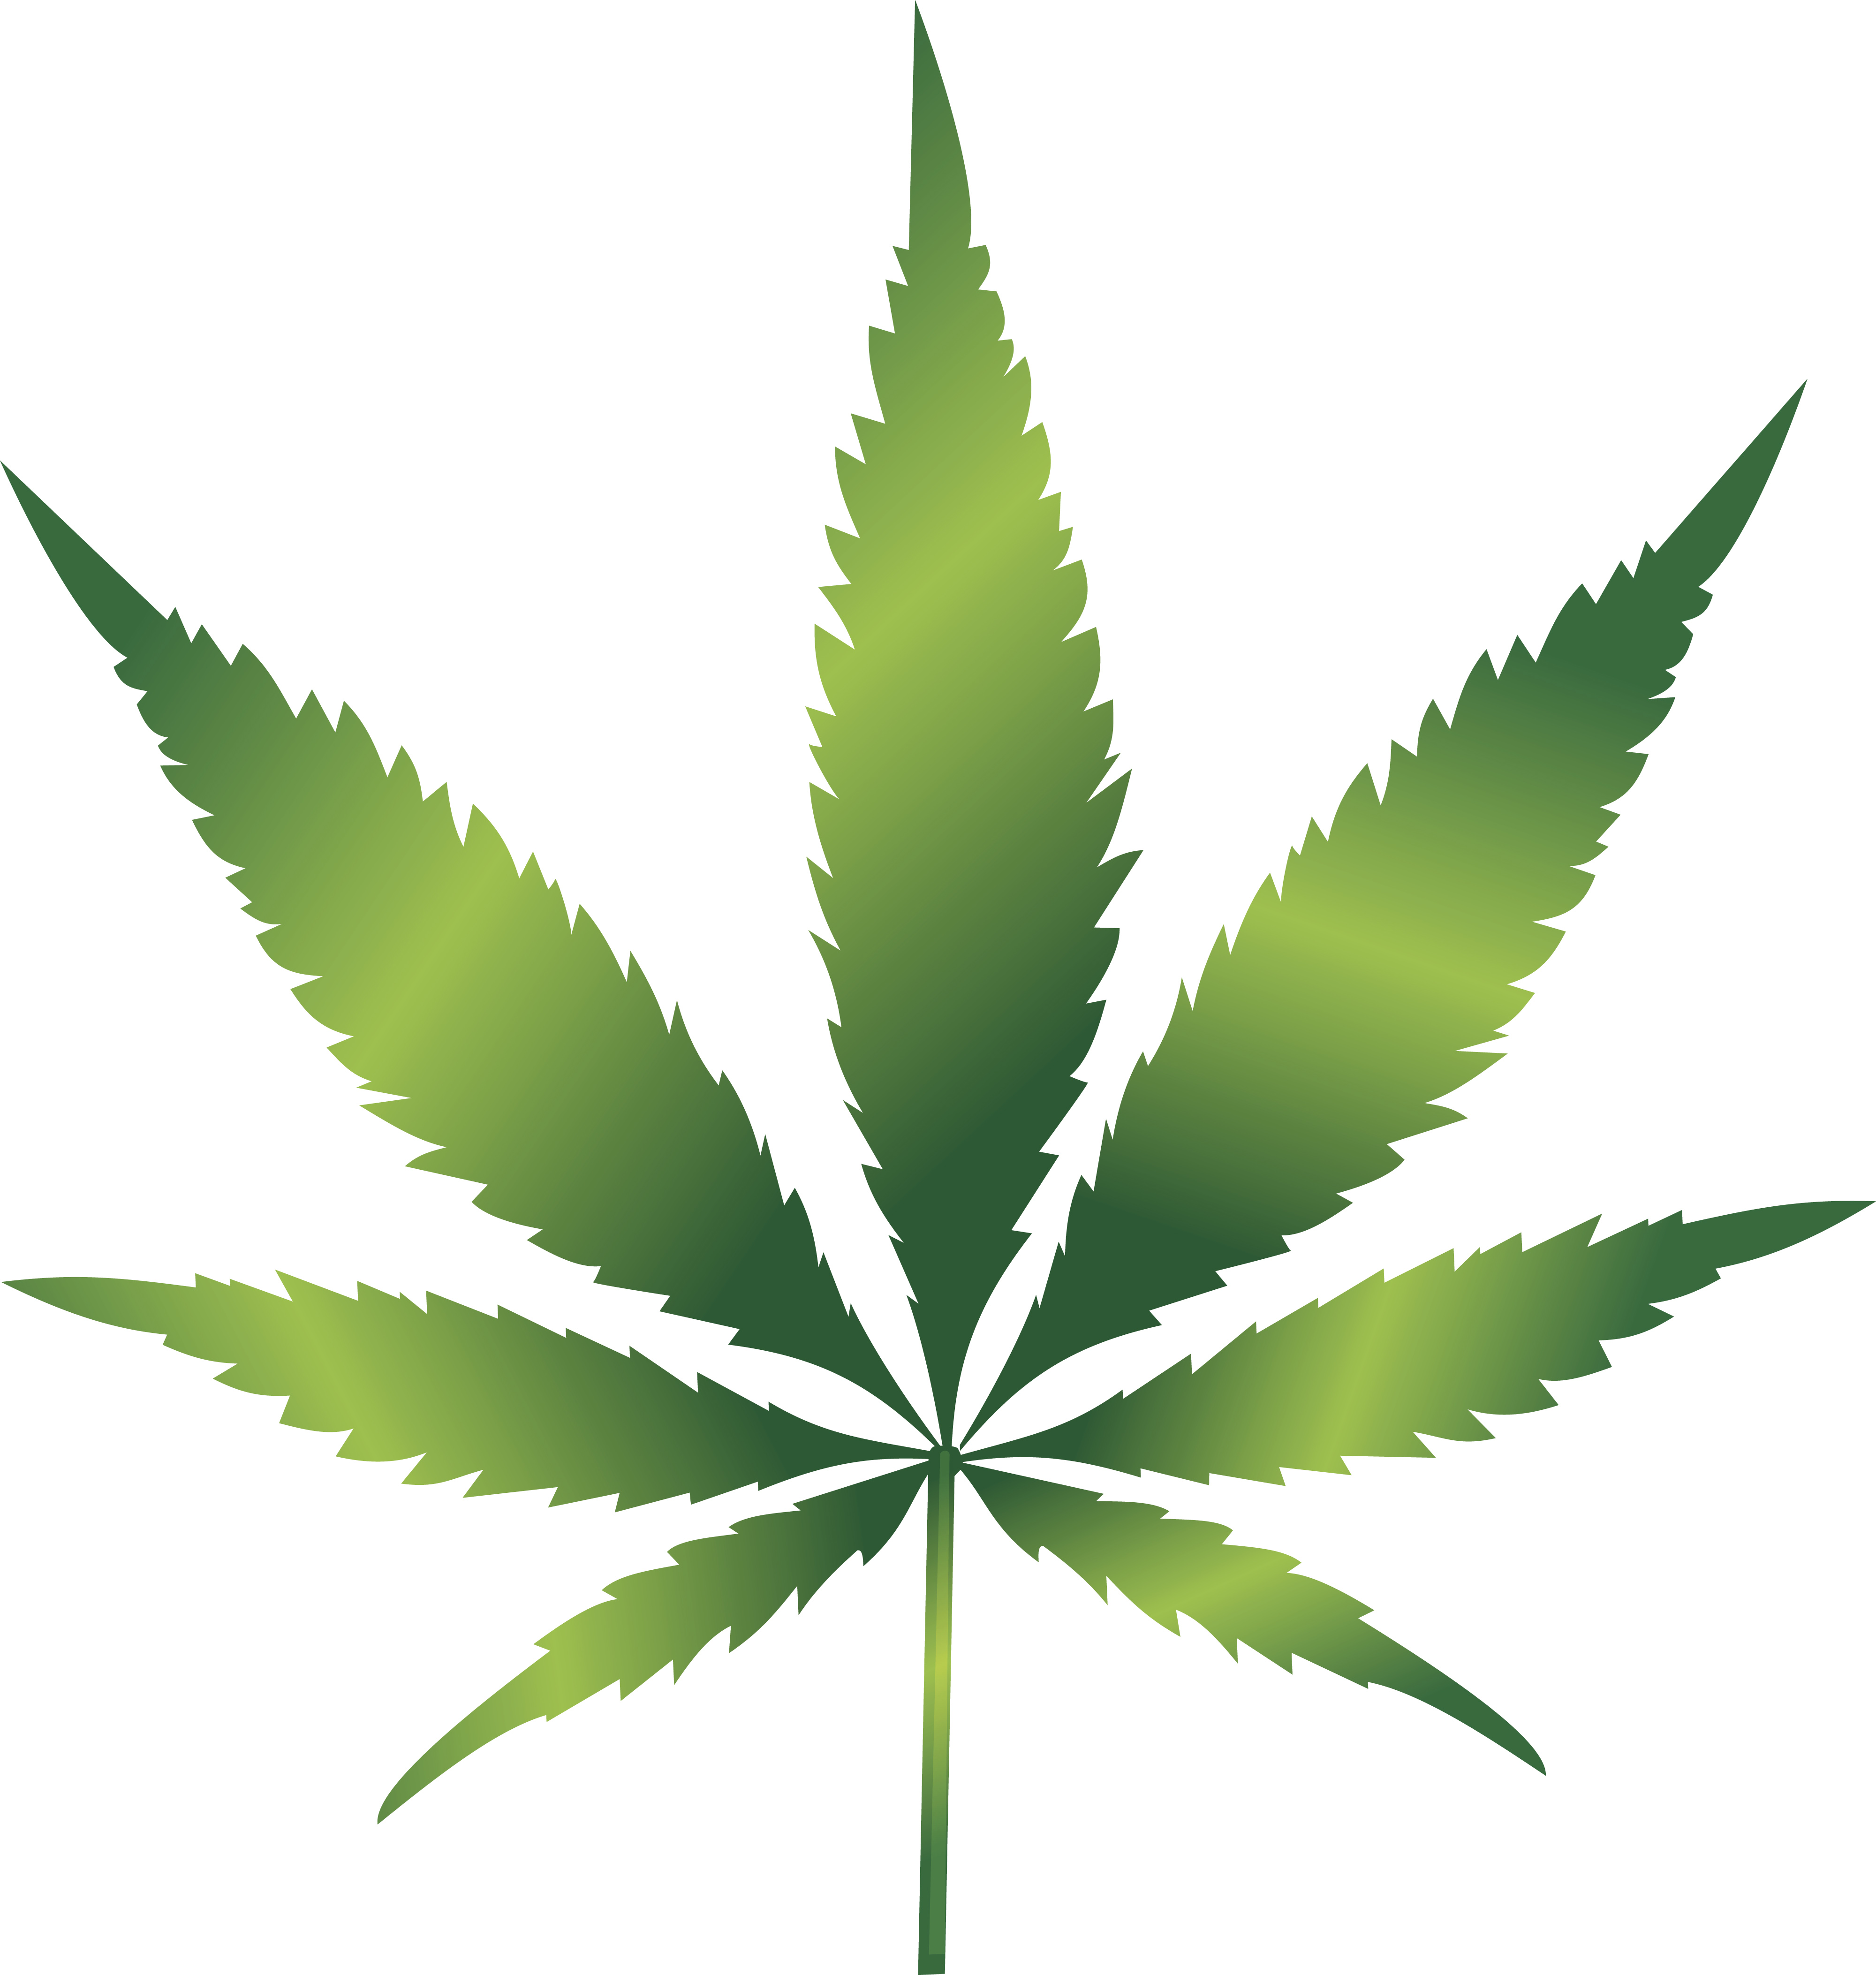 537 Weed free clipart.